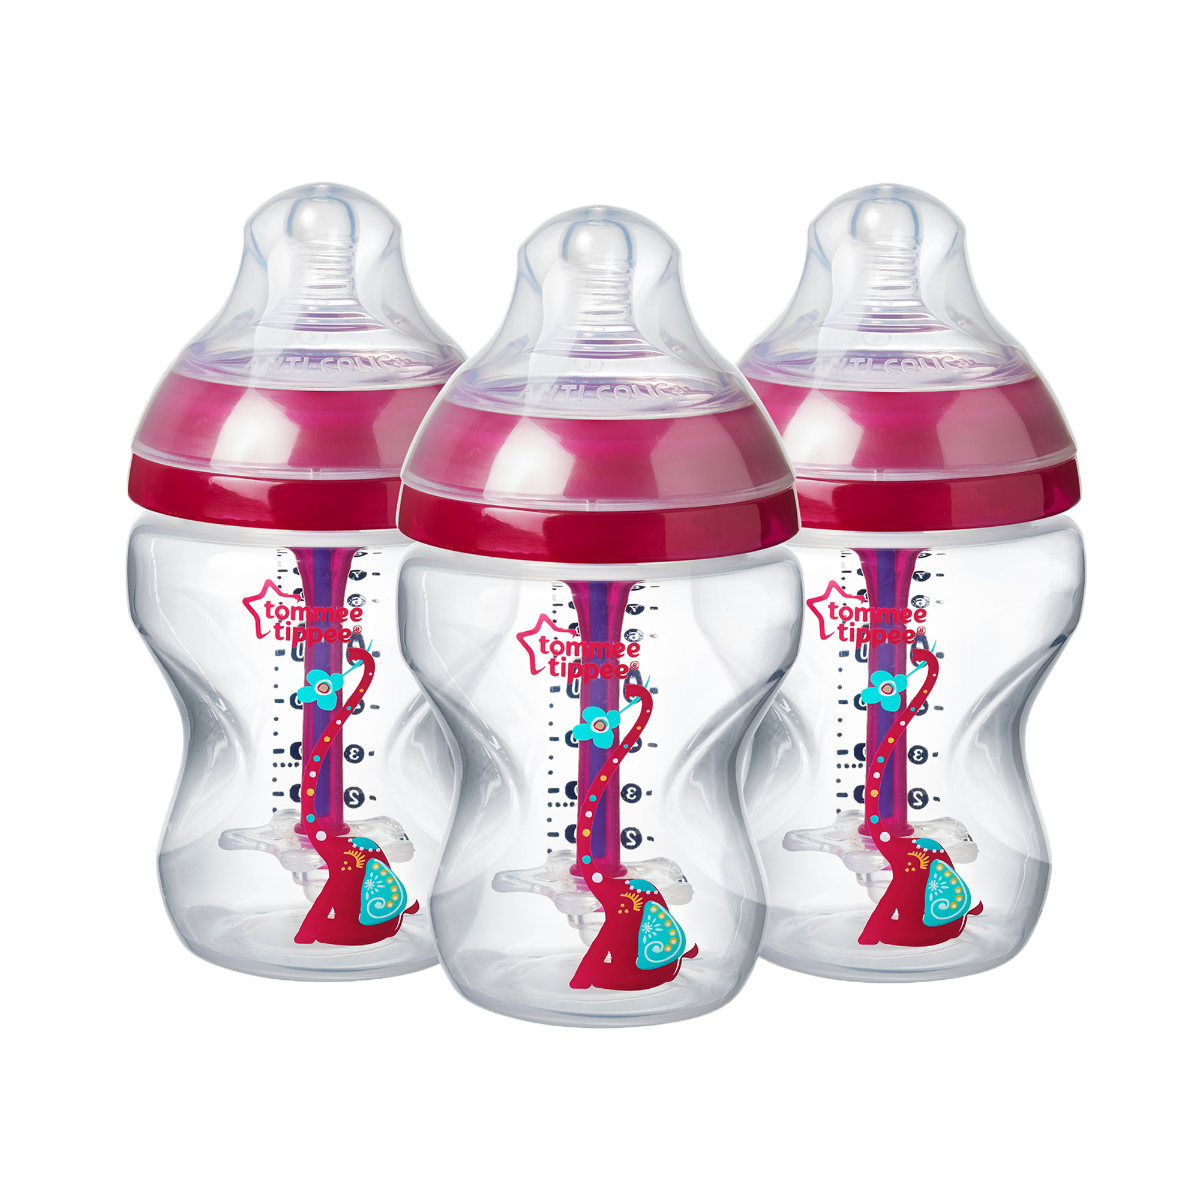 3-x-9-oz-advanced-anti-colic-baby-bottles-with-red-elephant-design